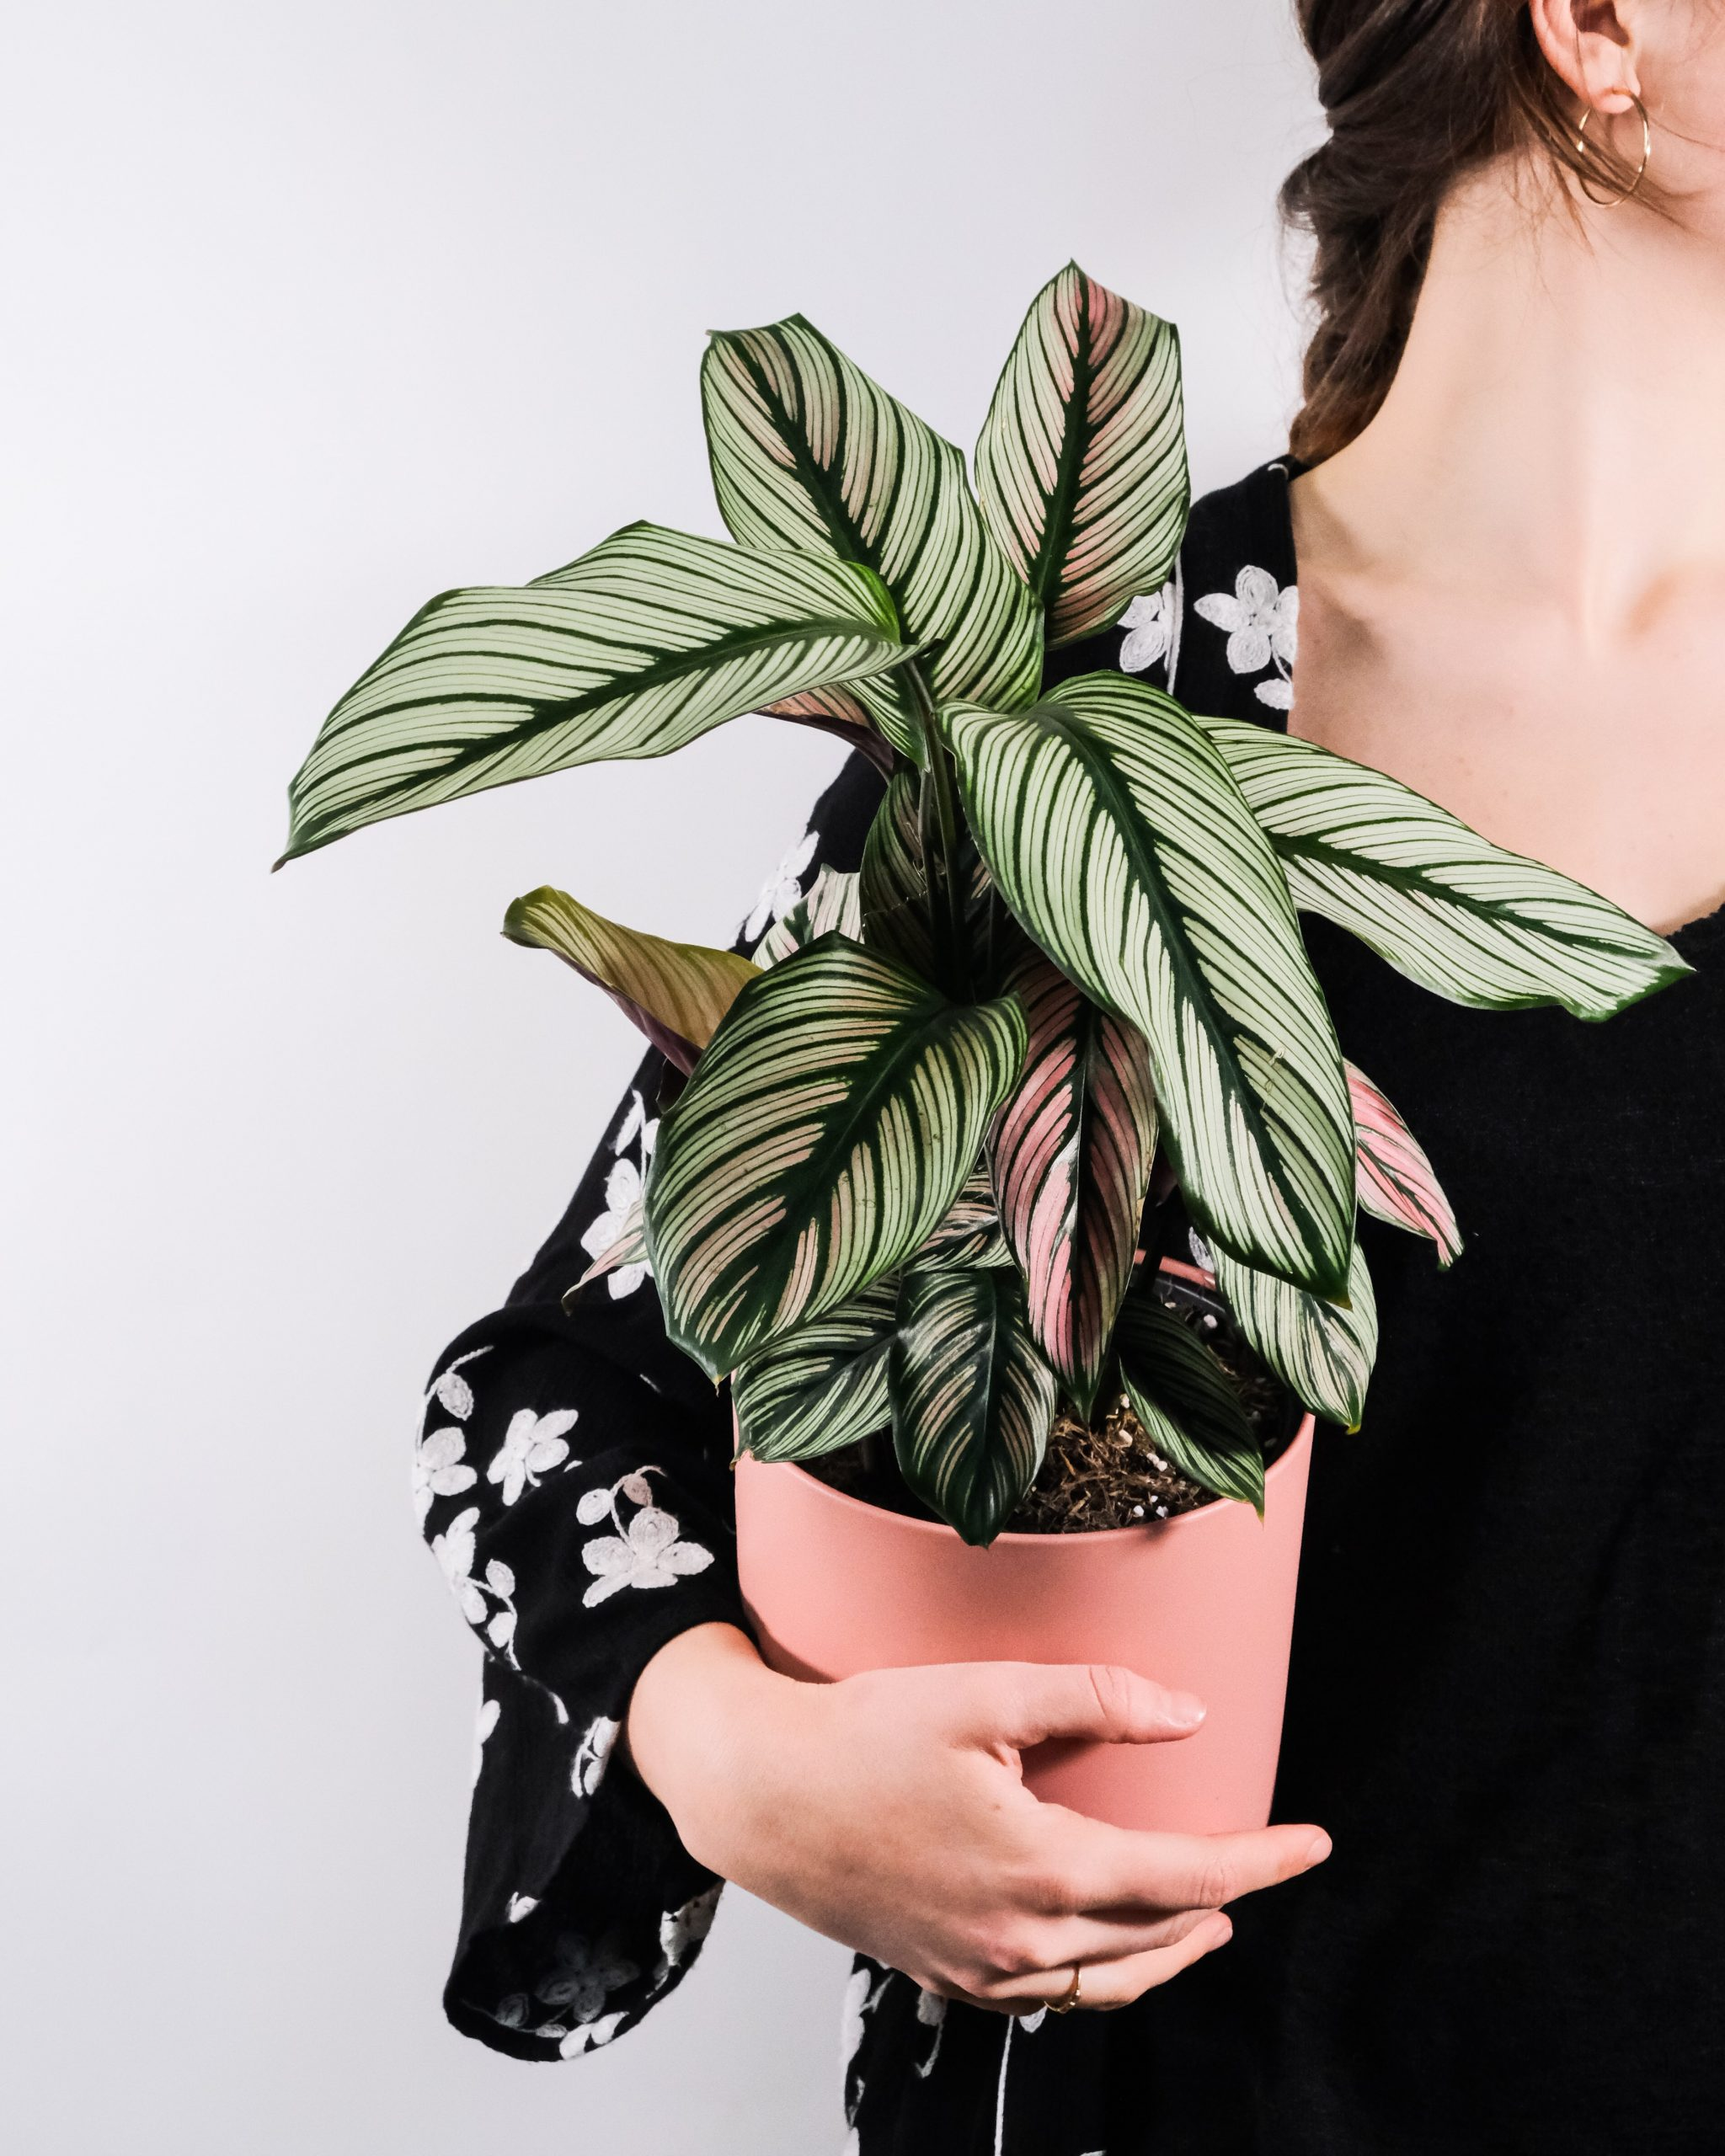 20 Trendy Dog Safe House Plants for 2021 feat. Calathea Majestica White Star - Image via Unsplash, photo by Severin Candrian